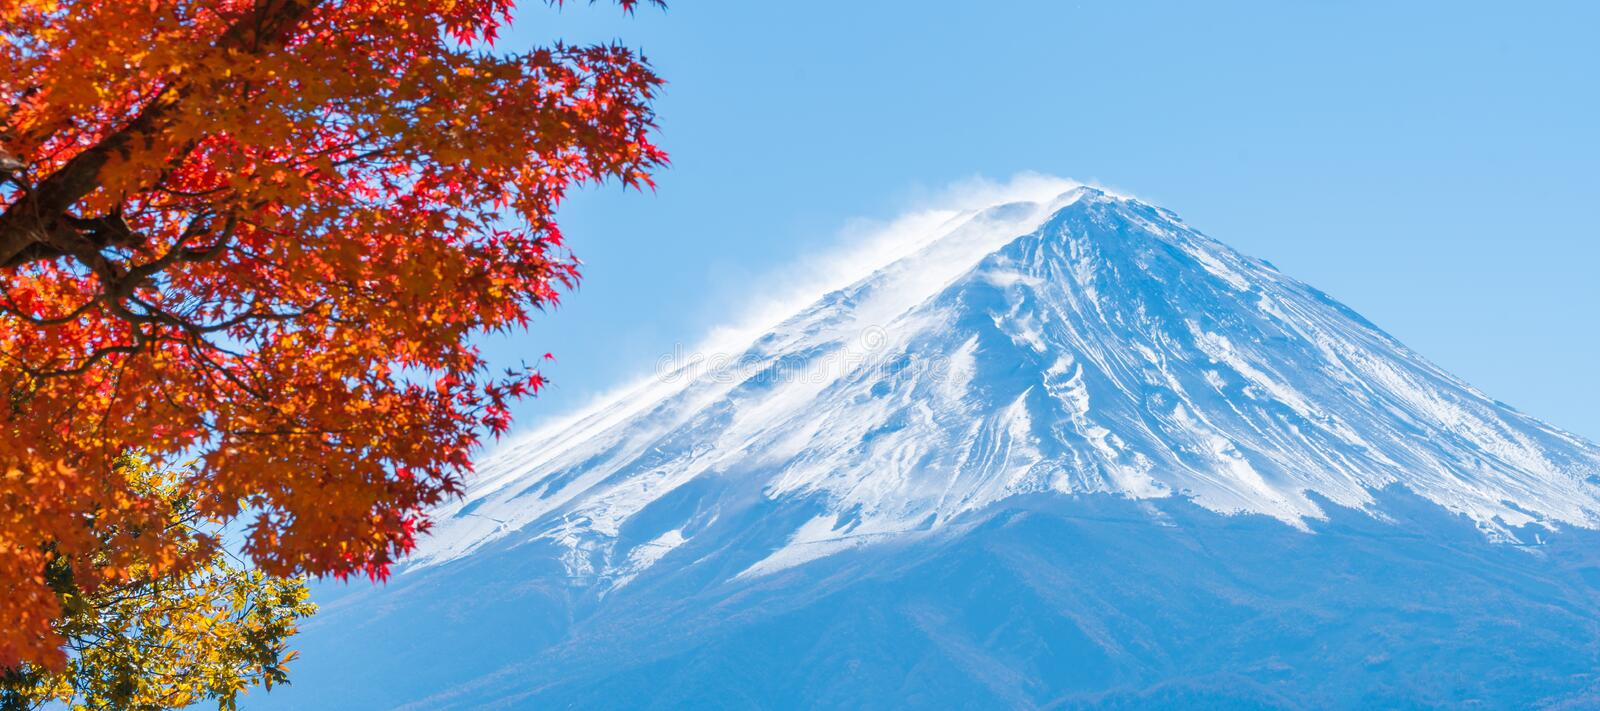 Der Fujisan in Autumn Color, Japan lizenzfreie stockfotos